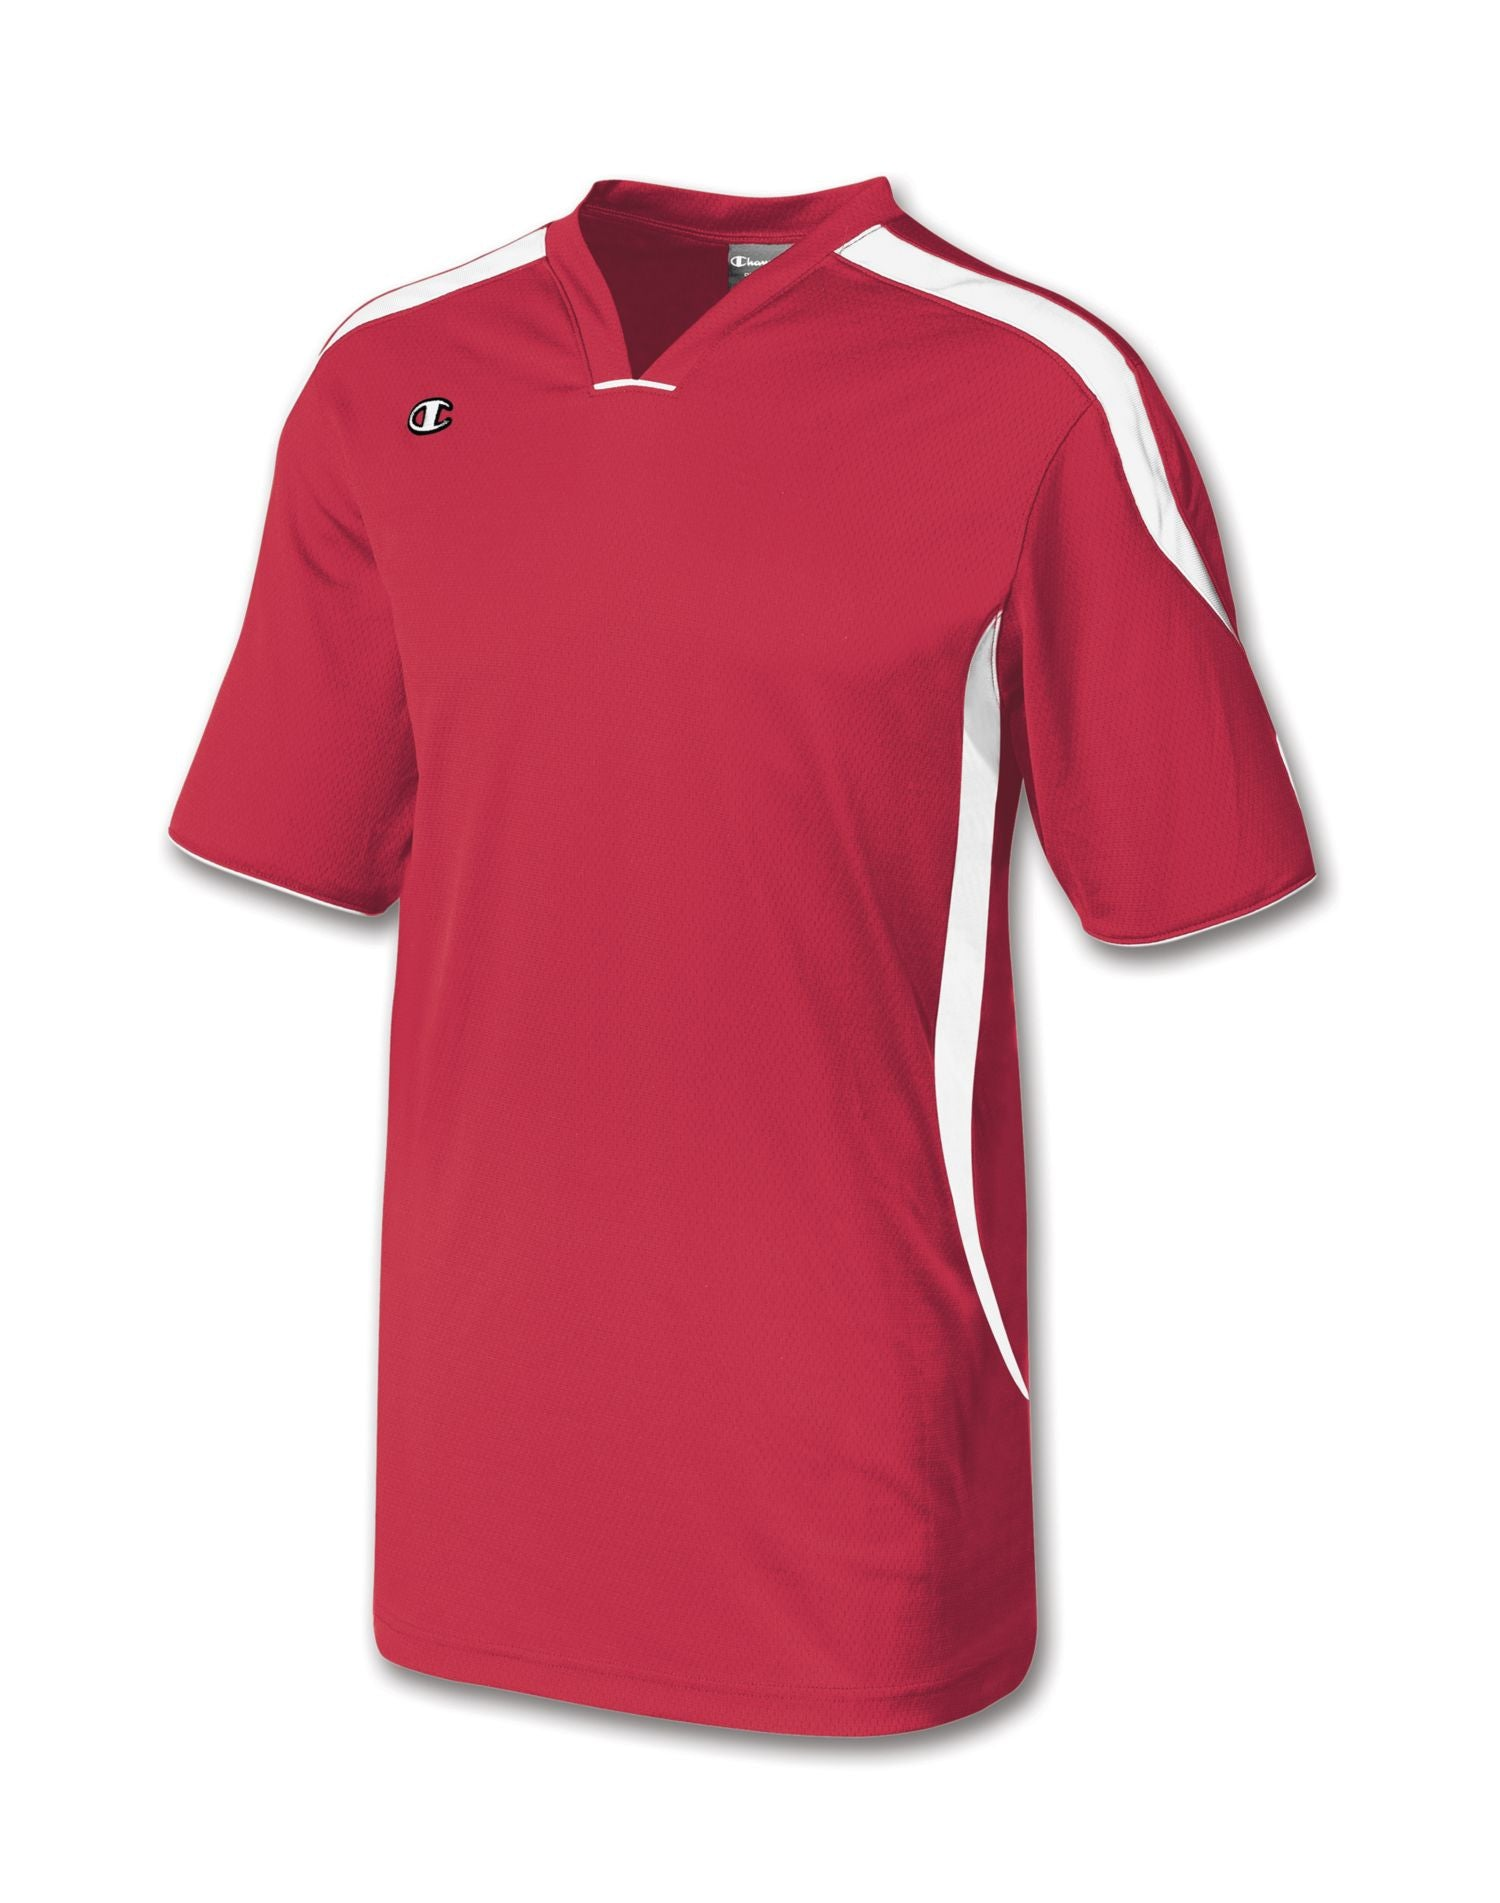 3a0bbe8c B833 - Champion Double Dry Short-Sleeve Men's Basketball Shooter ...